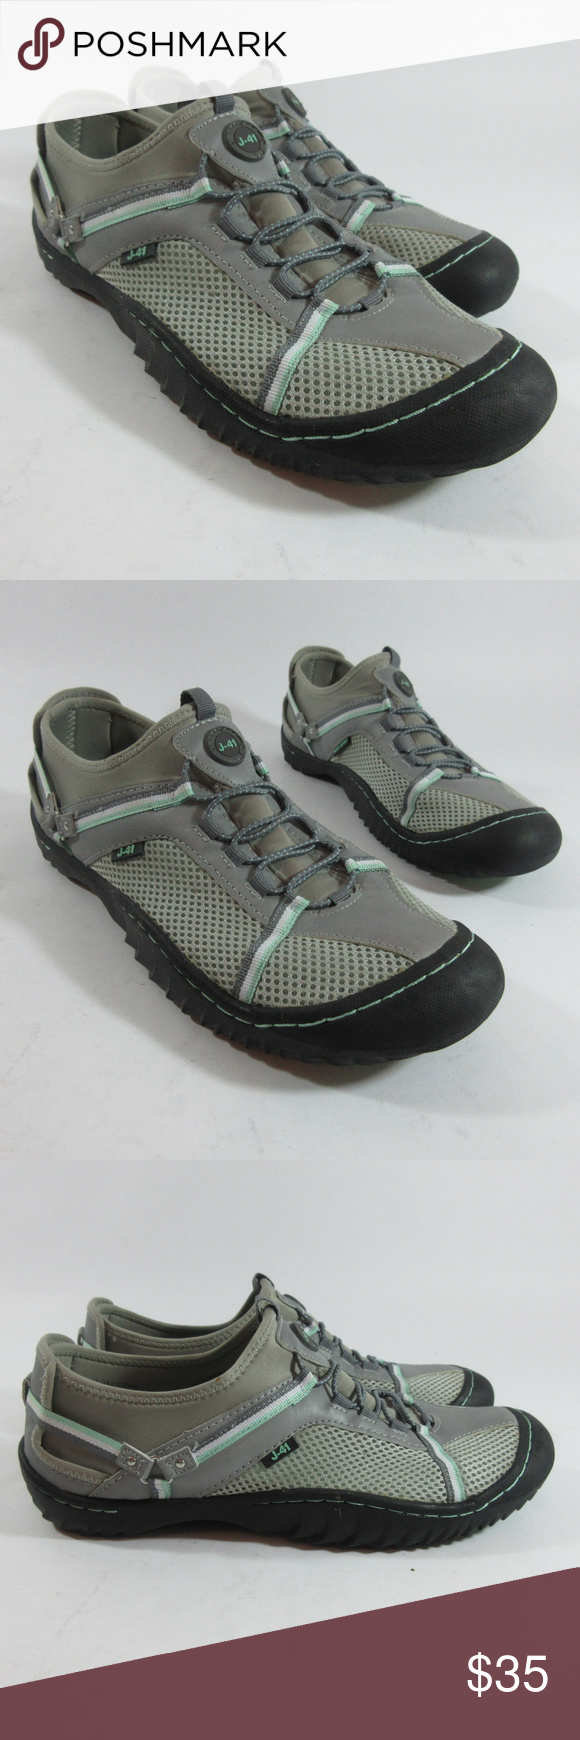 04a1bc75924cb J-41 Tahoe Trail Ready Water Vegan Walking Shoes J-41 Tahoe Trail Ready  Beach Water Vegan Slip On Walking Shoes Womens Size 10 M Great pre-owned  condition.